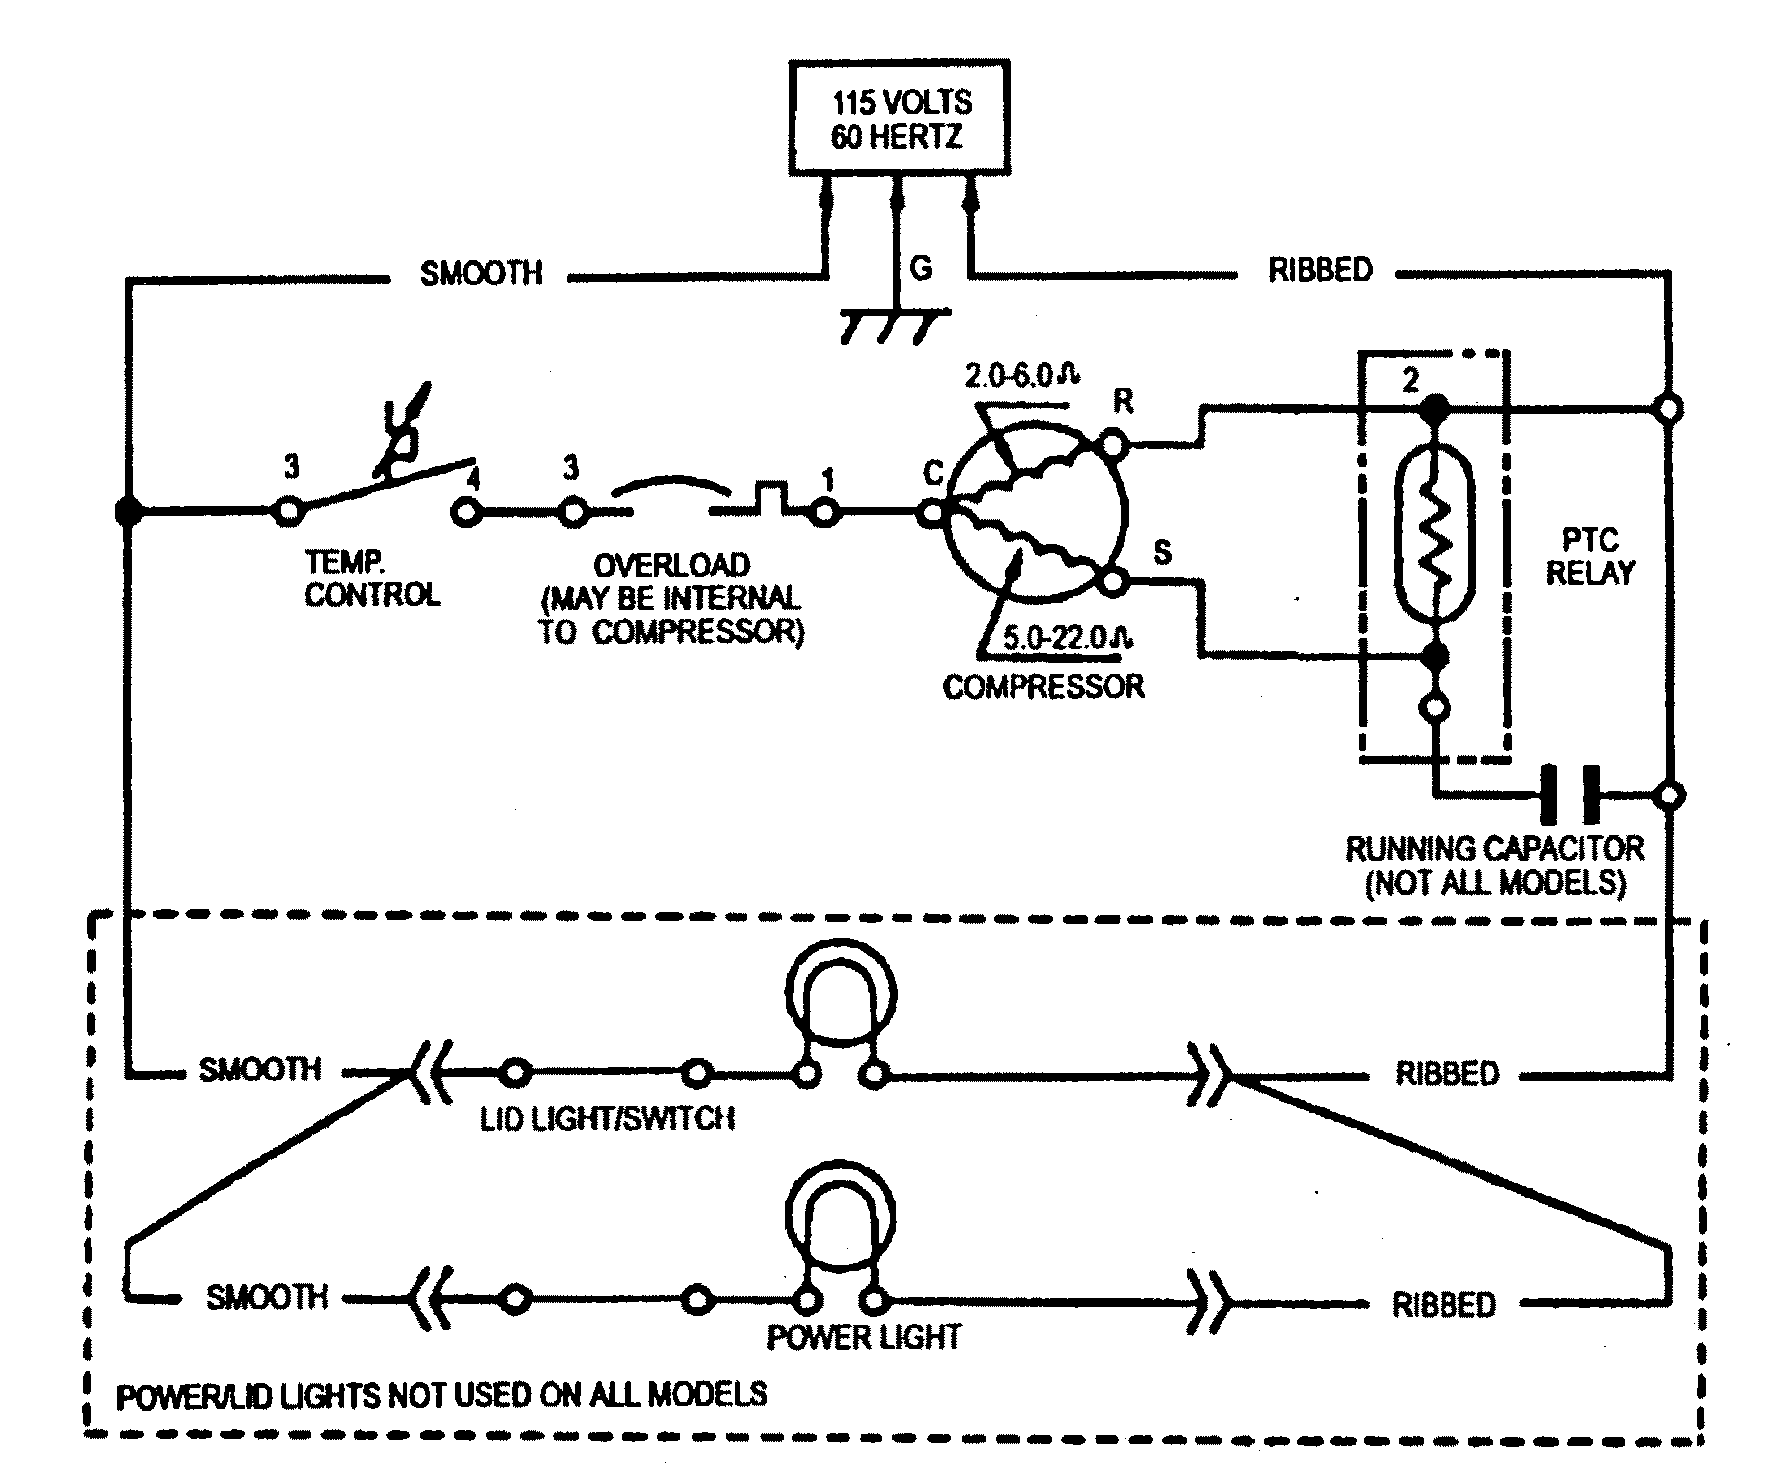 Paragon Defrost Timer Wiring Diagram Haier Furnace Thermostat Wiring